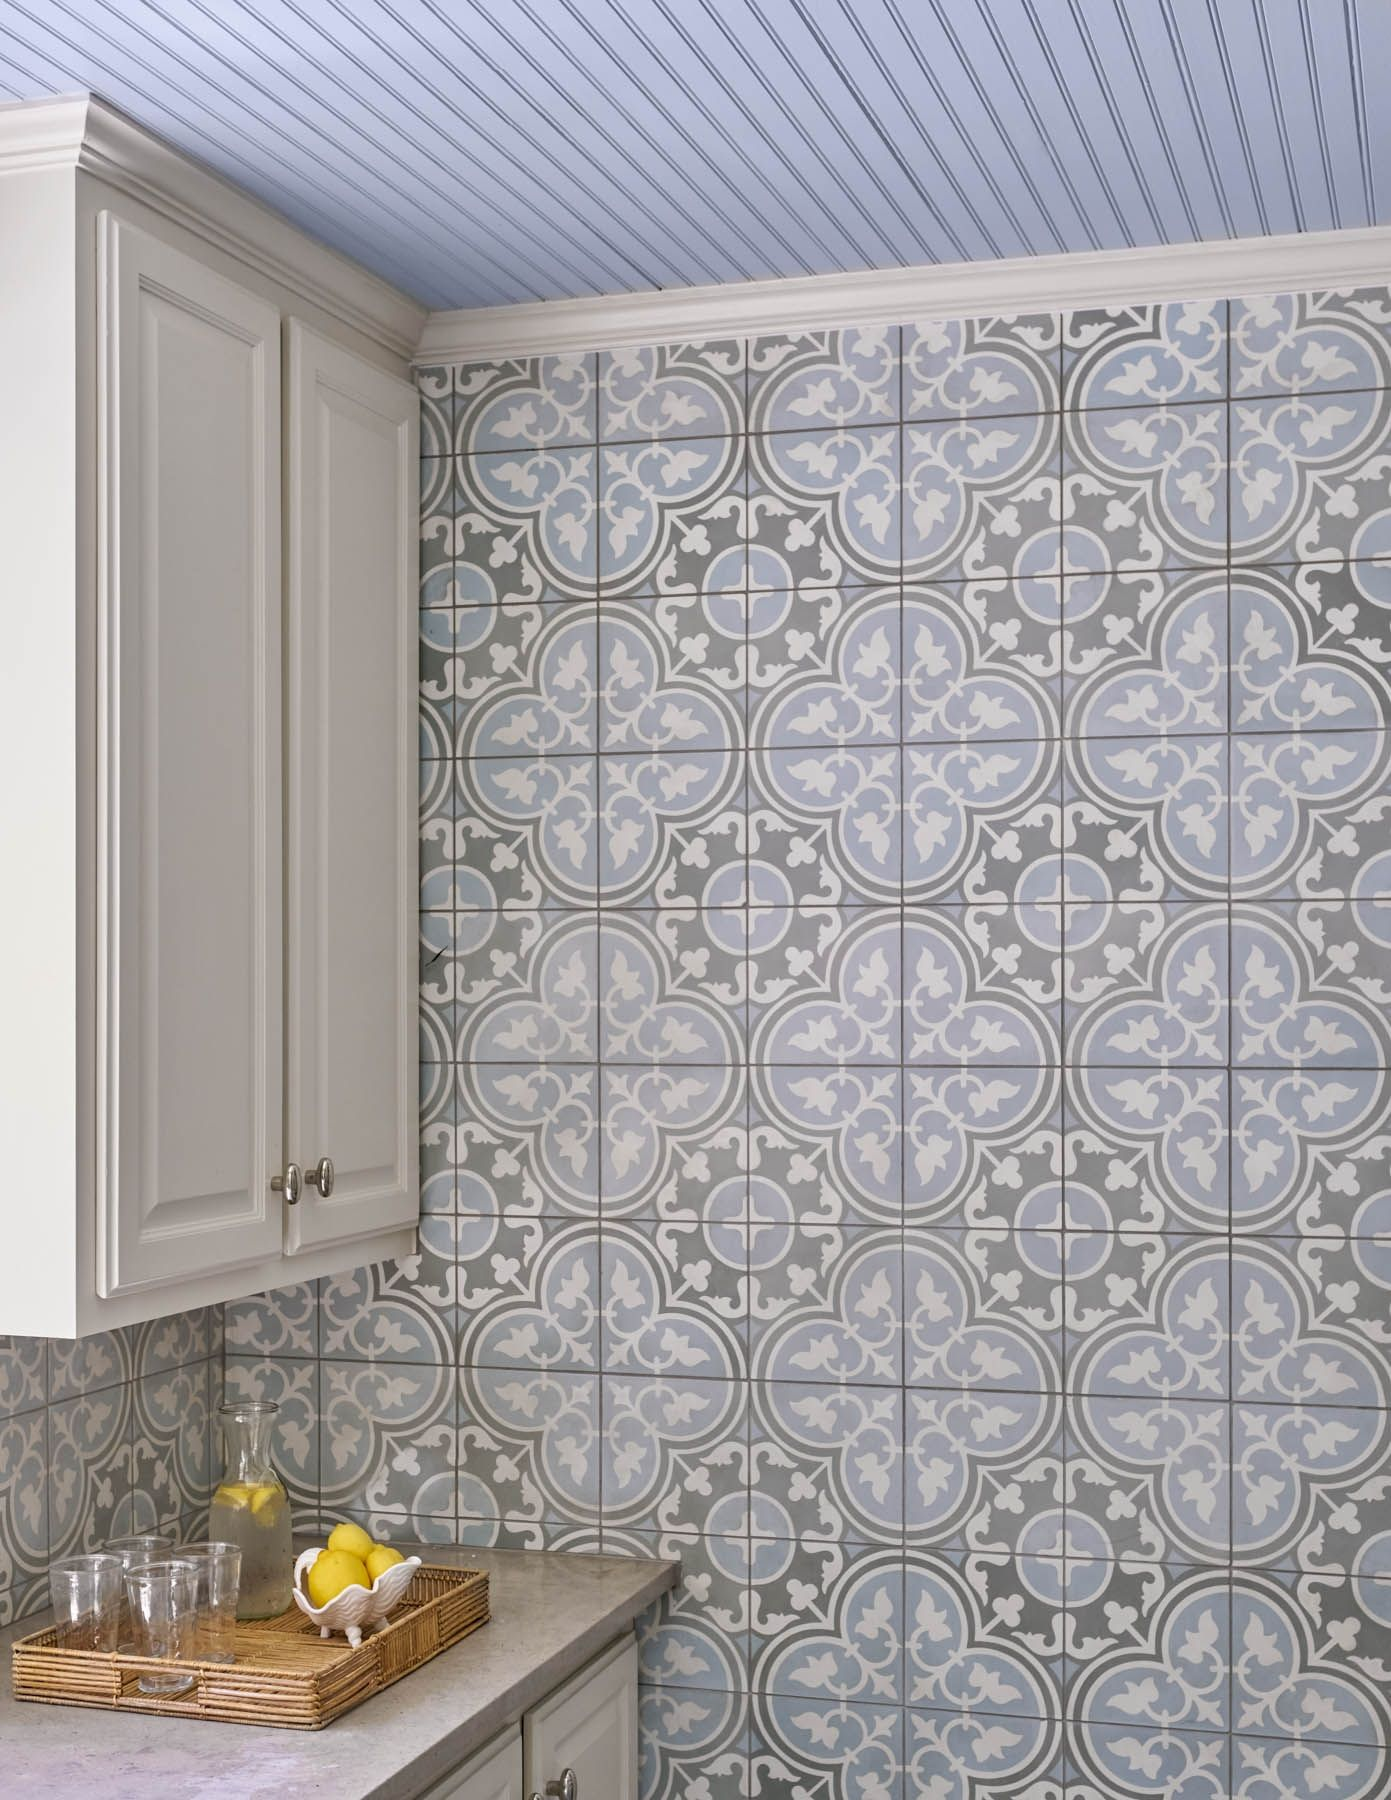 Euclid traditional amy berry design inspires me pinterest beneath a purple beadboard ceiling cement tile shop bouquet tiles complement white cabinets finished with polished nickel knobs and a concrete countertop dailygadgetfo Images